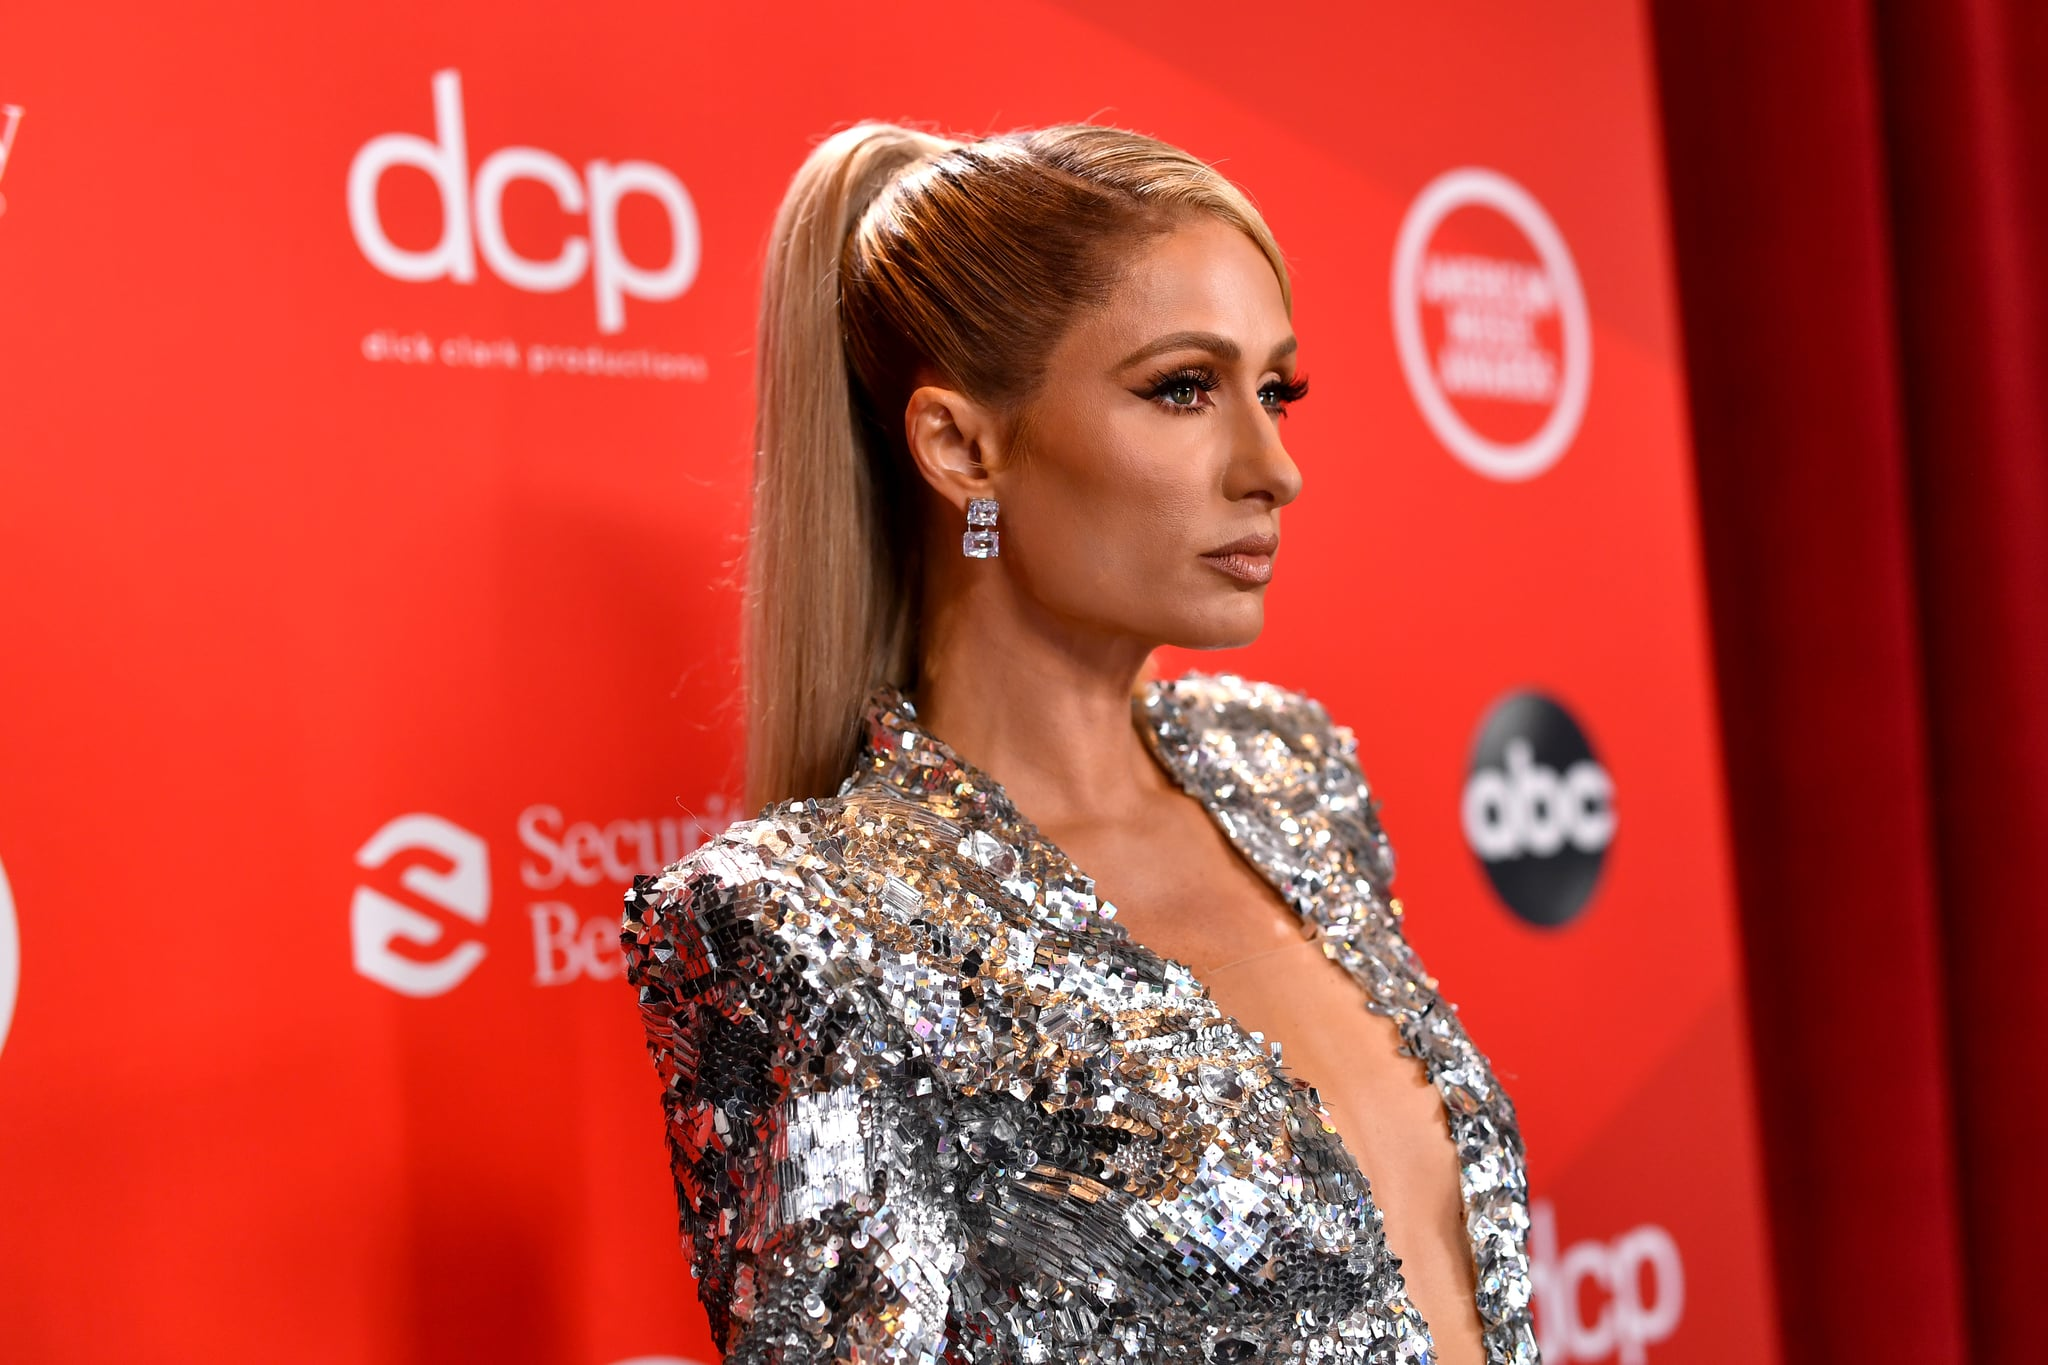 LOS ANGELES, CALIFORNIA - NOVEMBER 22: In this image released on November 22, Paris Hilton attends the 2020 American Music Awards at Microsoft Theater on November 22, 2020 in Los Angeles, California. (Photo by Emma McIntyre /AMA2020/Getty Images for dcp)